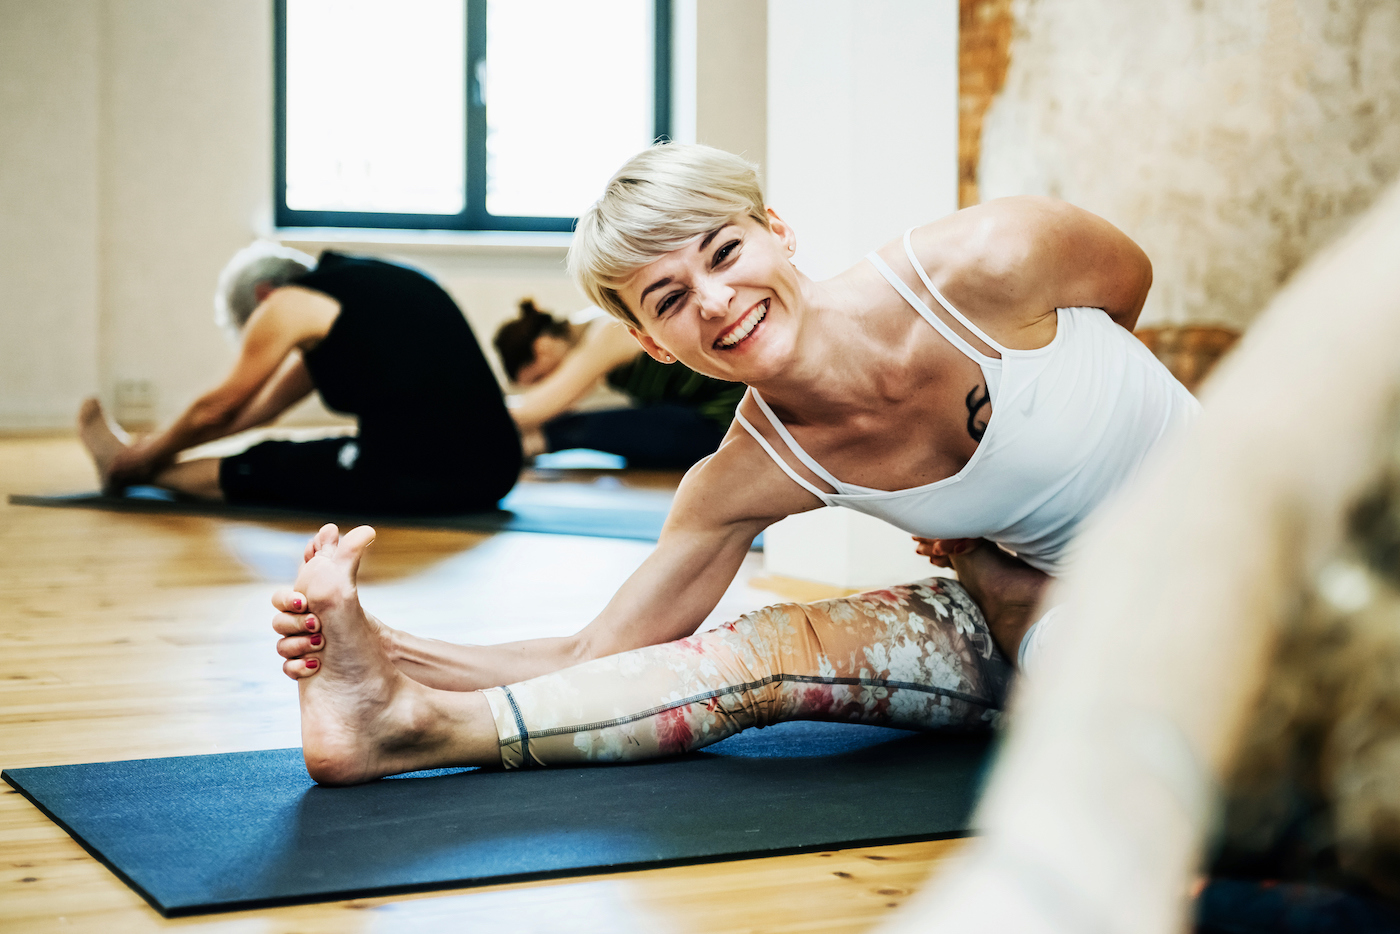 What it's like to take a class focused solely on stretching out your muscles